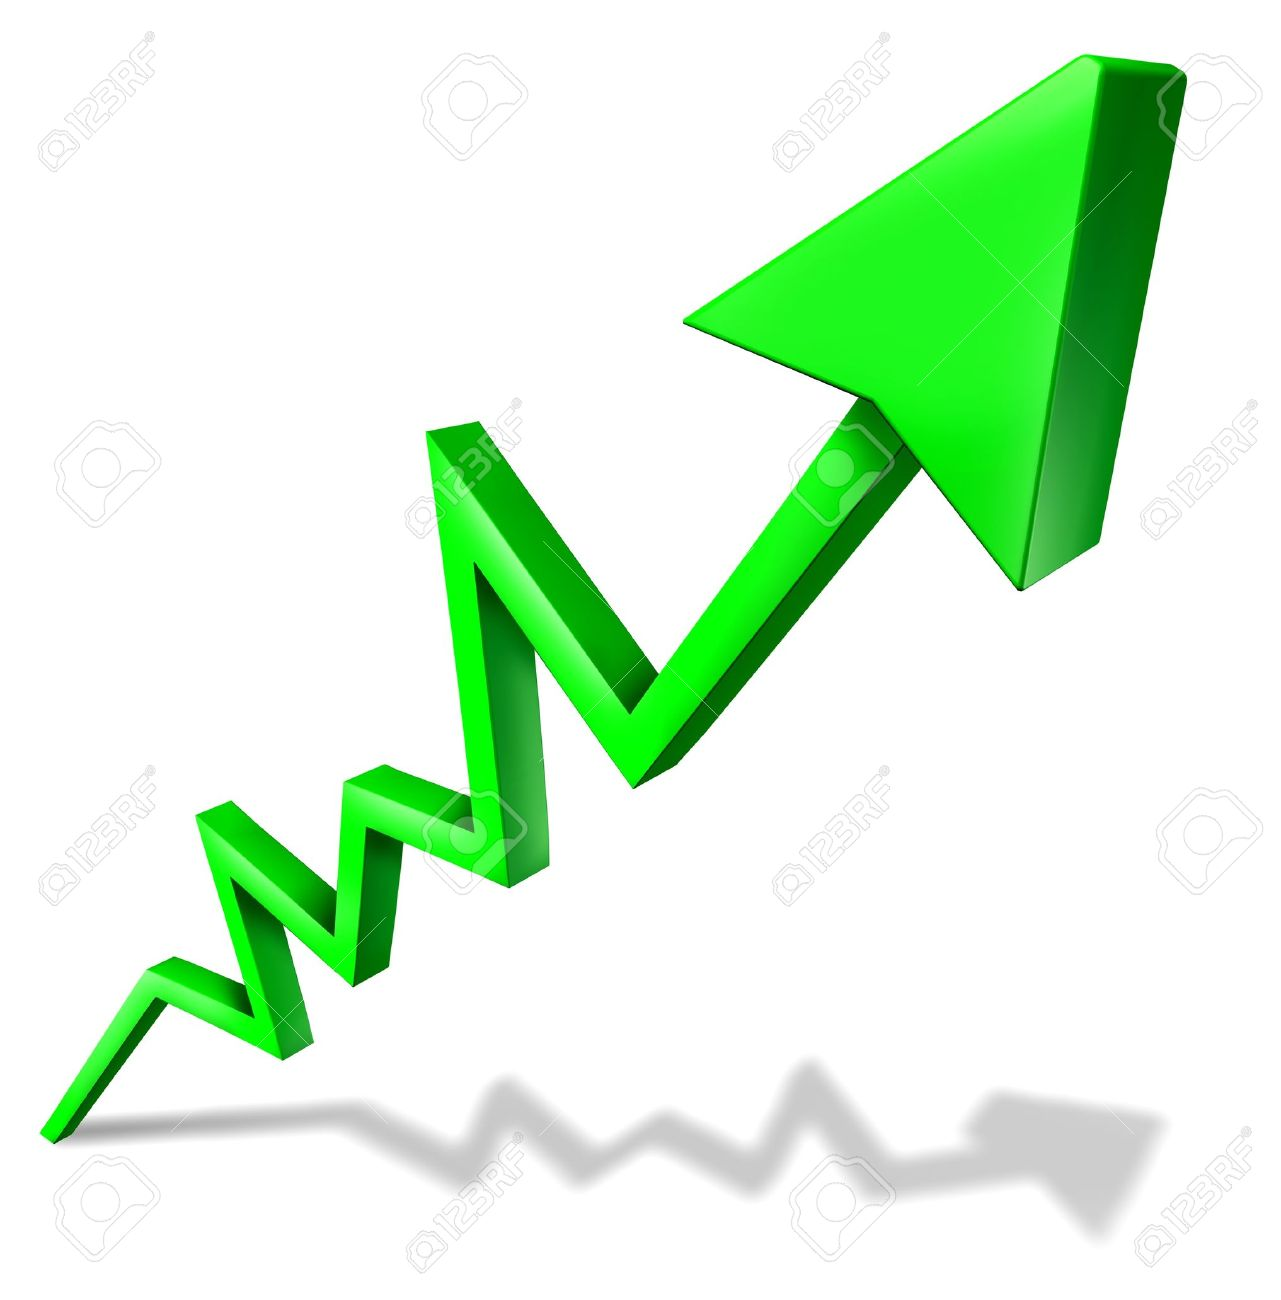 Success in business green arrow graph pointing upward and rising as a symbol of financial success and economic indicator of profitability and growth in market share on white background with shadow. Stock Photo - 11359775